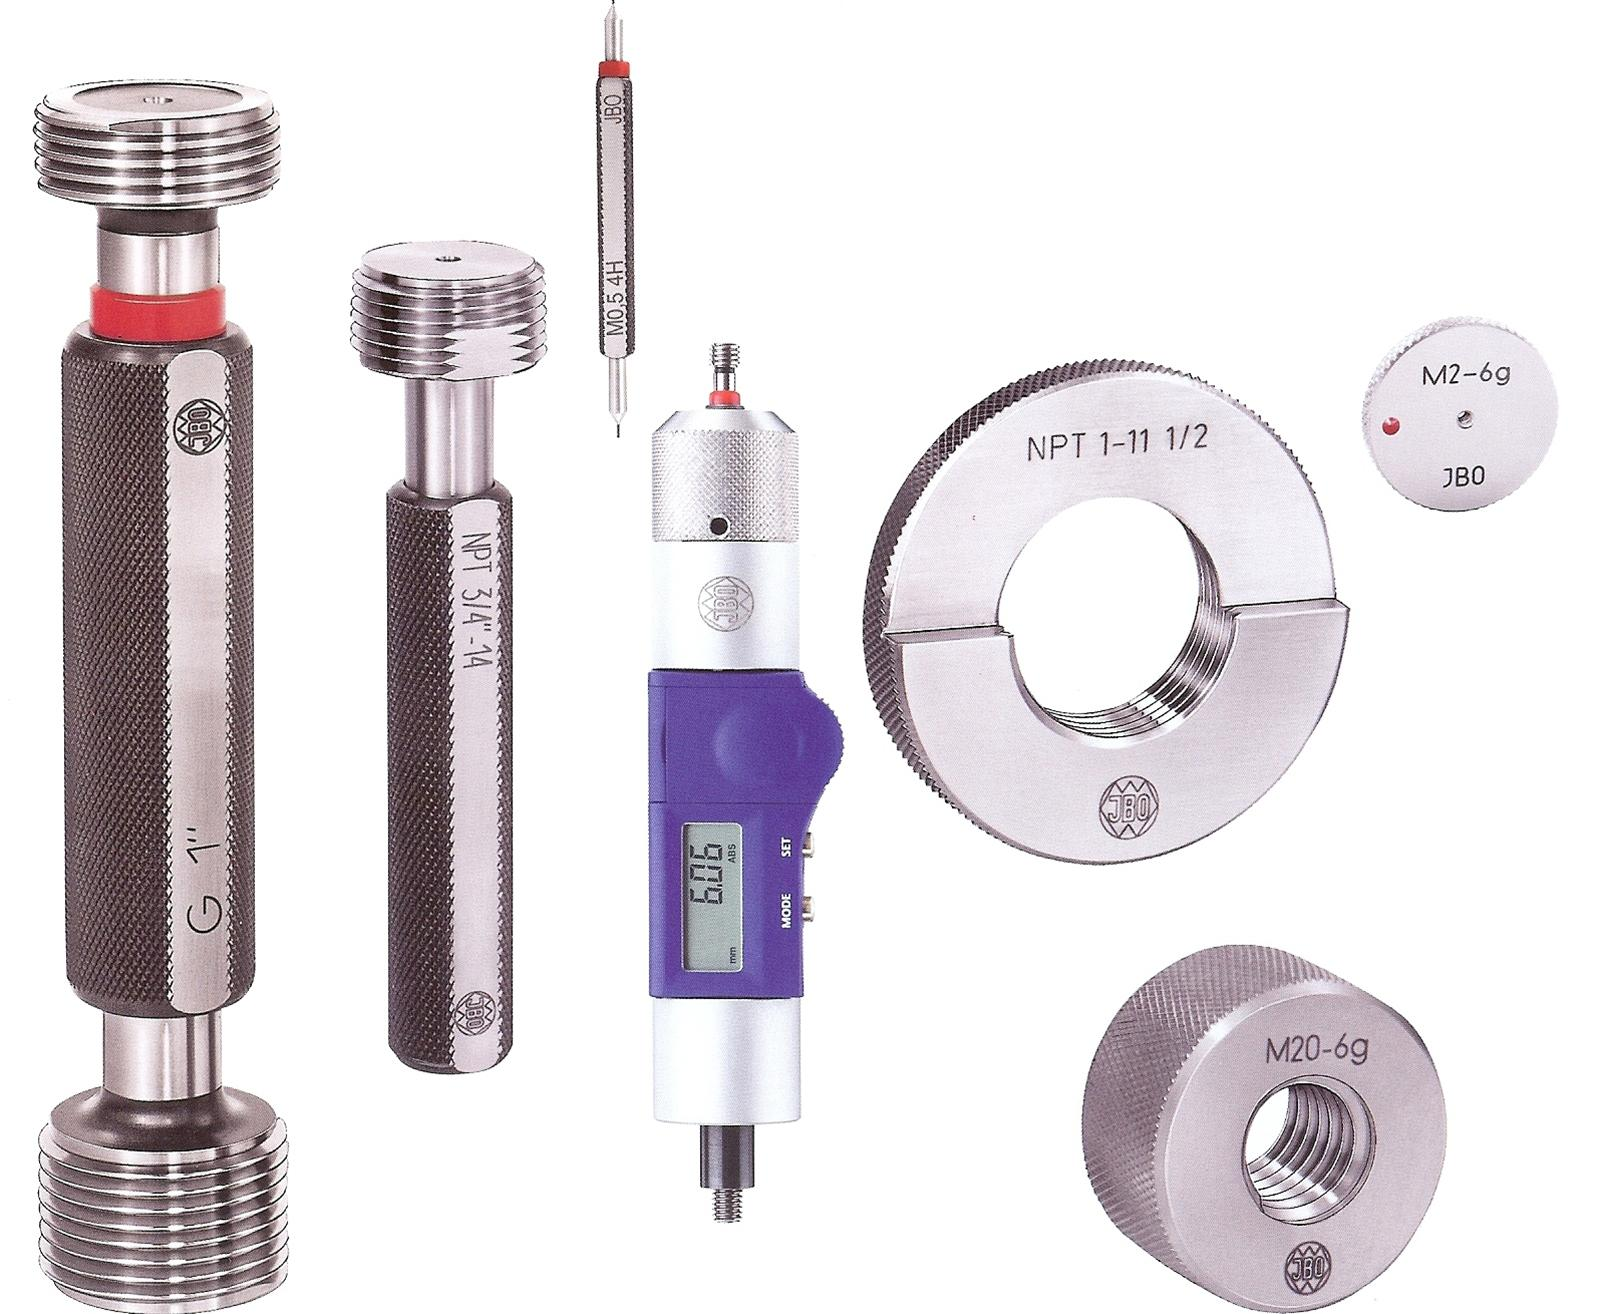 - Stocdon offers the JBO range of Standard Stocked Thread Gauges from Europe's No. 1 producer, with over 10,000 different stock items, using hi-tech manufacturing process to assure quality and price. The gauges are all manufactured in AGE Hard tool steels and this gives us super quality and better usage life.From Plug Thread Gauges to Ring Gauges and Multicheck, we carry a huge range, and offer TICN Coated Thread Gauges and Hard Chrome coated Thread Gauges.JBO thread gauges are all backed up by German DIN Standardor UKAS Thread Gauge Certificates. For a complete measuring solution, MULTICHECK Thread Gauges enable length and diameter checking.The MULTICHECK programme is offered with sleeve.Vernier,Digital systems for reading lengths and now the eMULTICHECK is available with powered automatic control for depth.